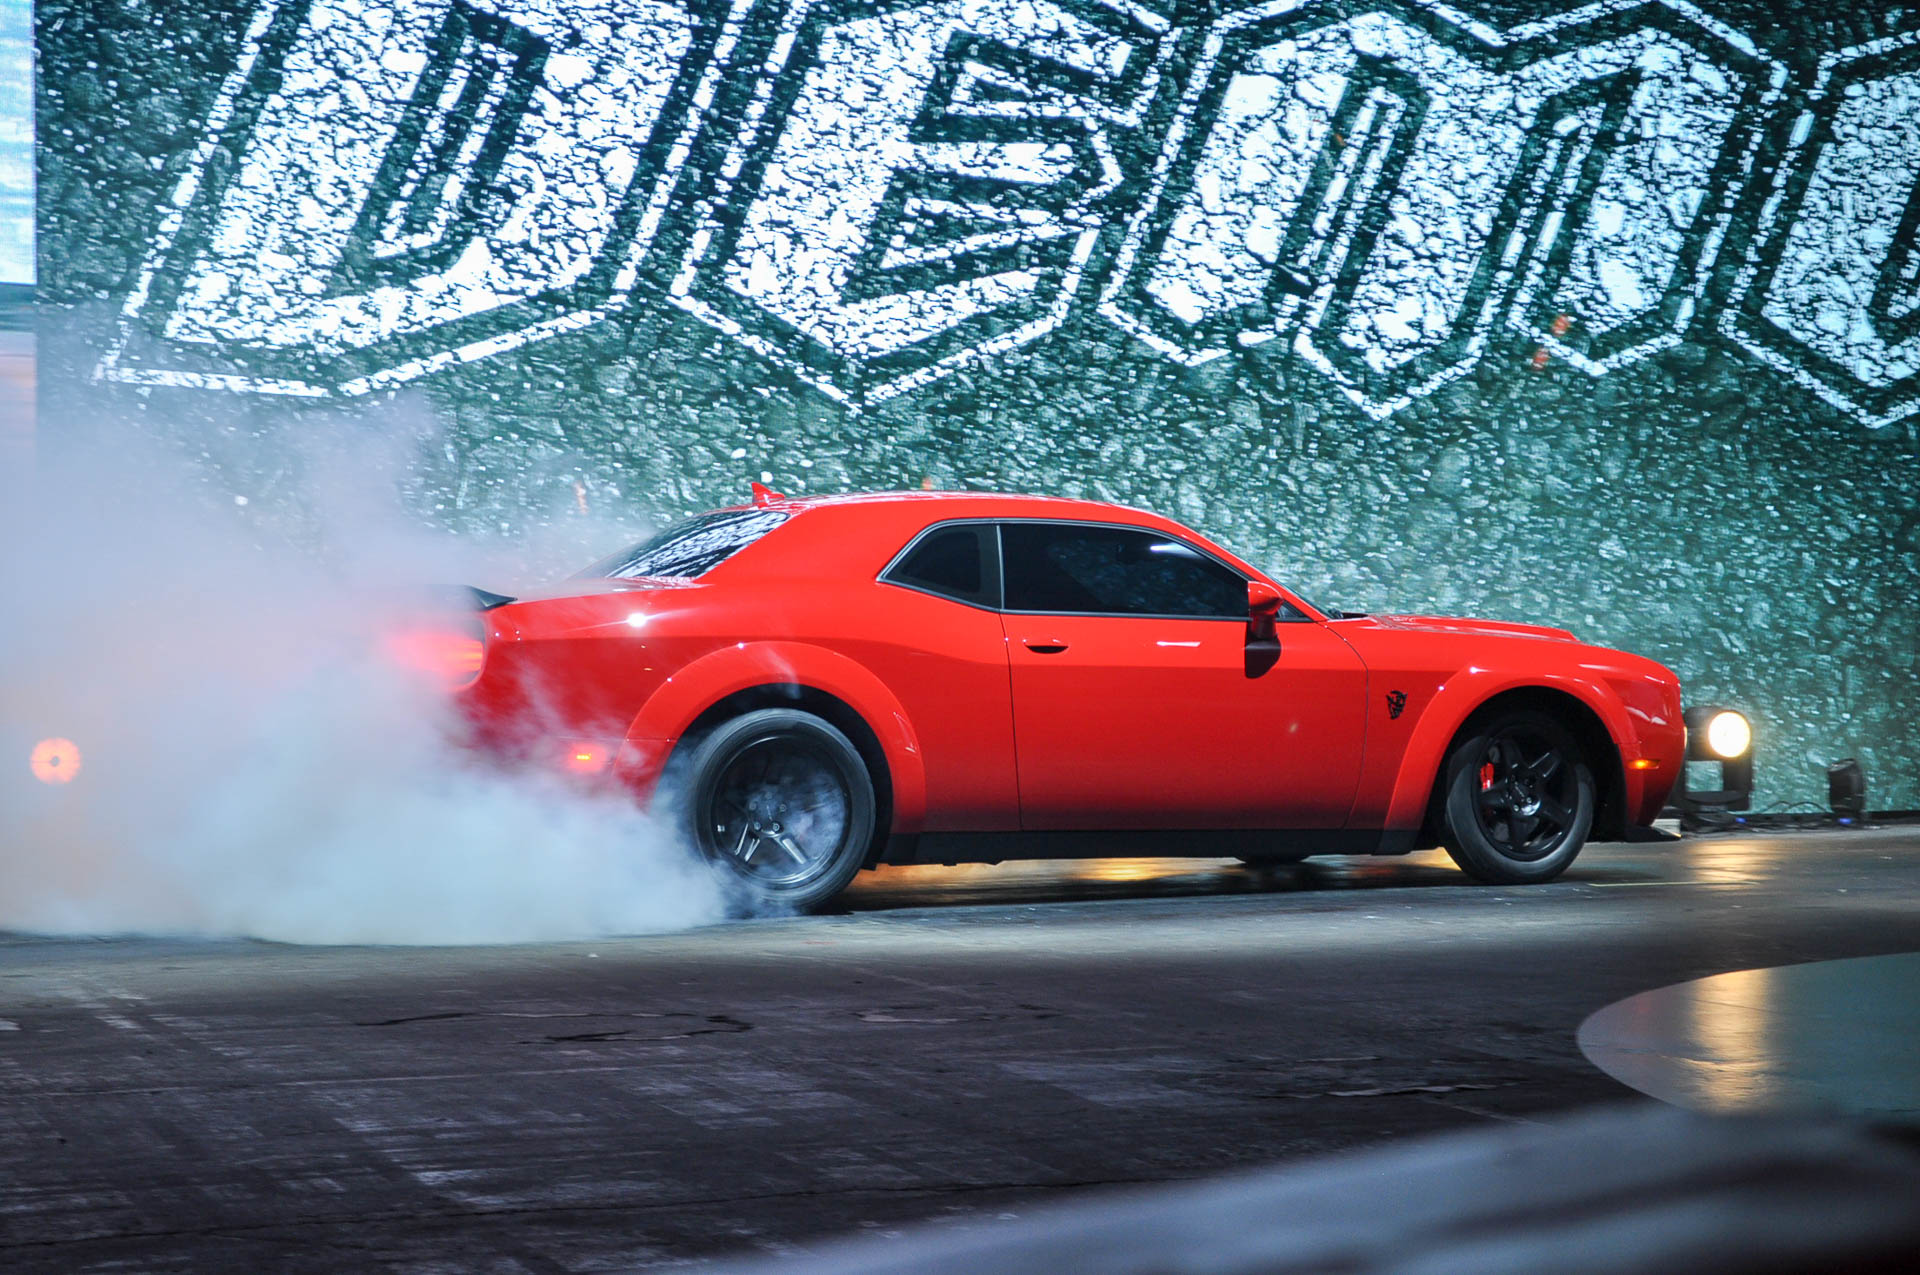 2018 dodge demon delivers 840 horsepower does 0 60 in 2 3 seconds rh motorauthority com